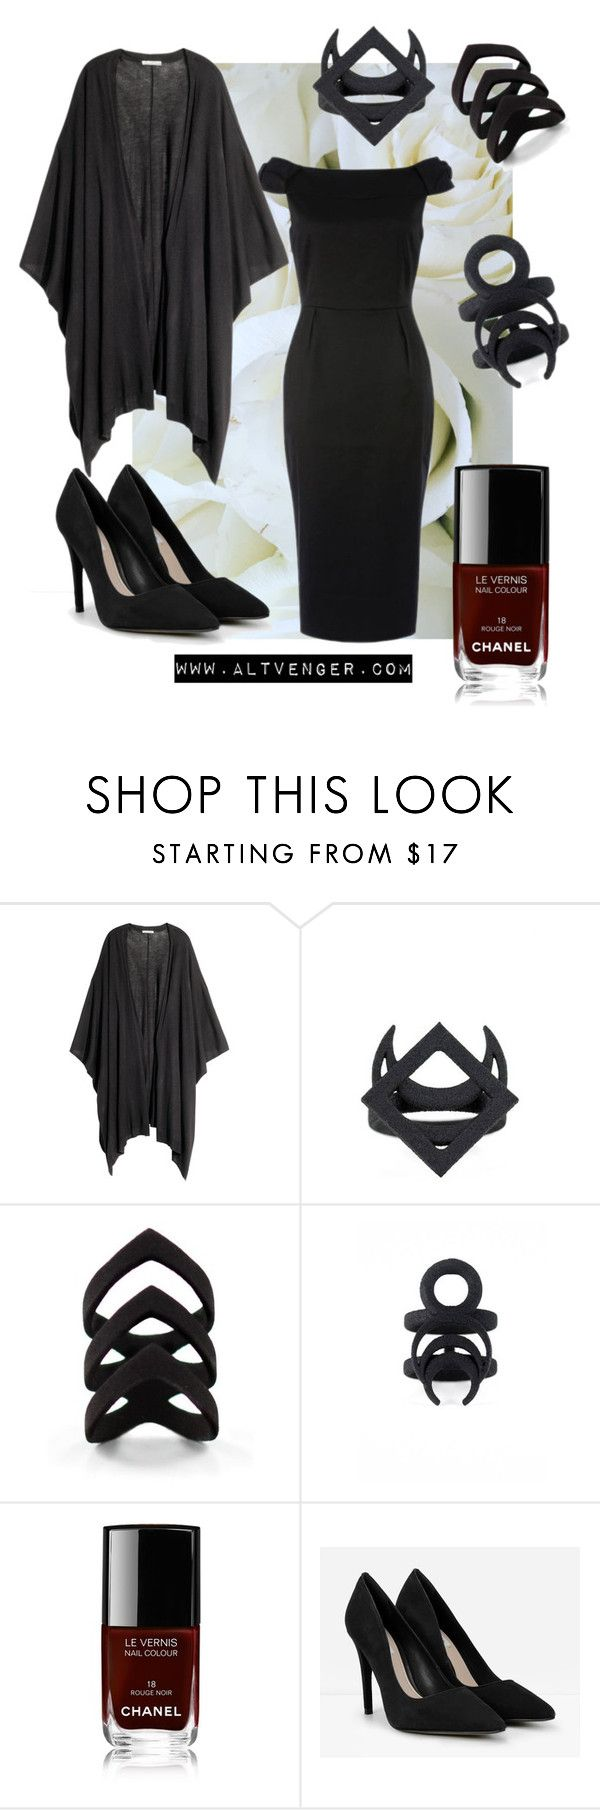 """Corporate Witch"" by venusmantrap ❤ liked on Polyvore featuring H&M, Chanel, CHARLES & KEITH, vintage, goth, gothic, corporate and witch"